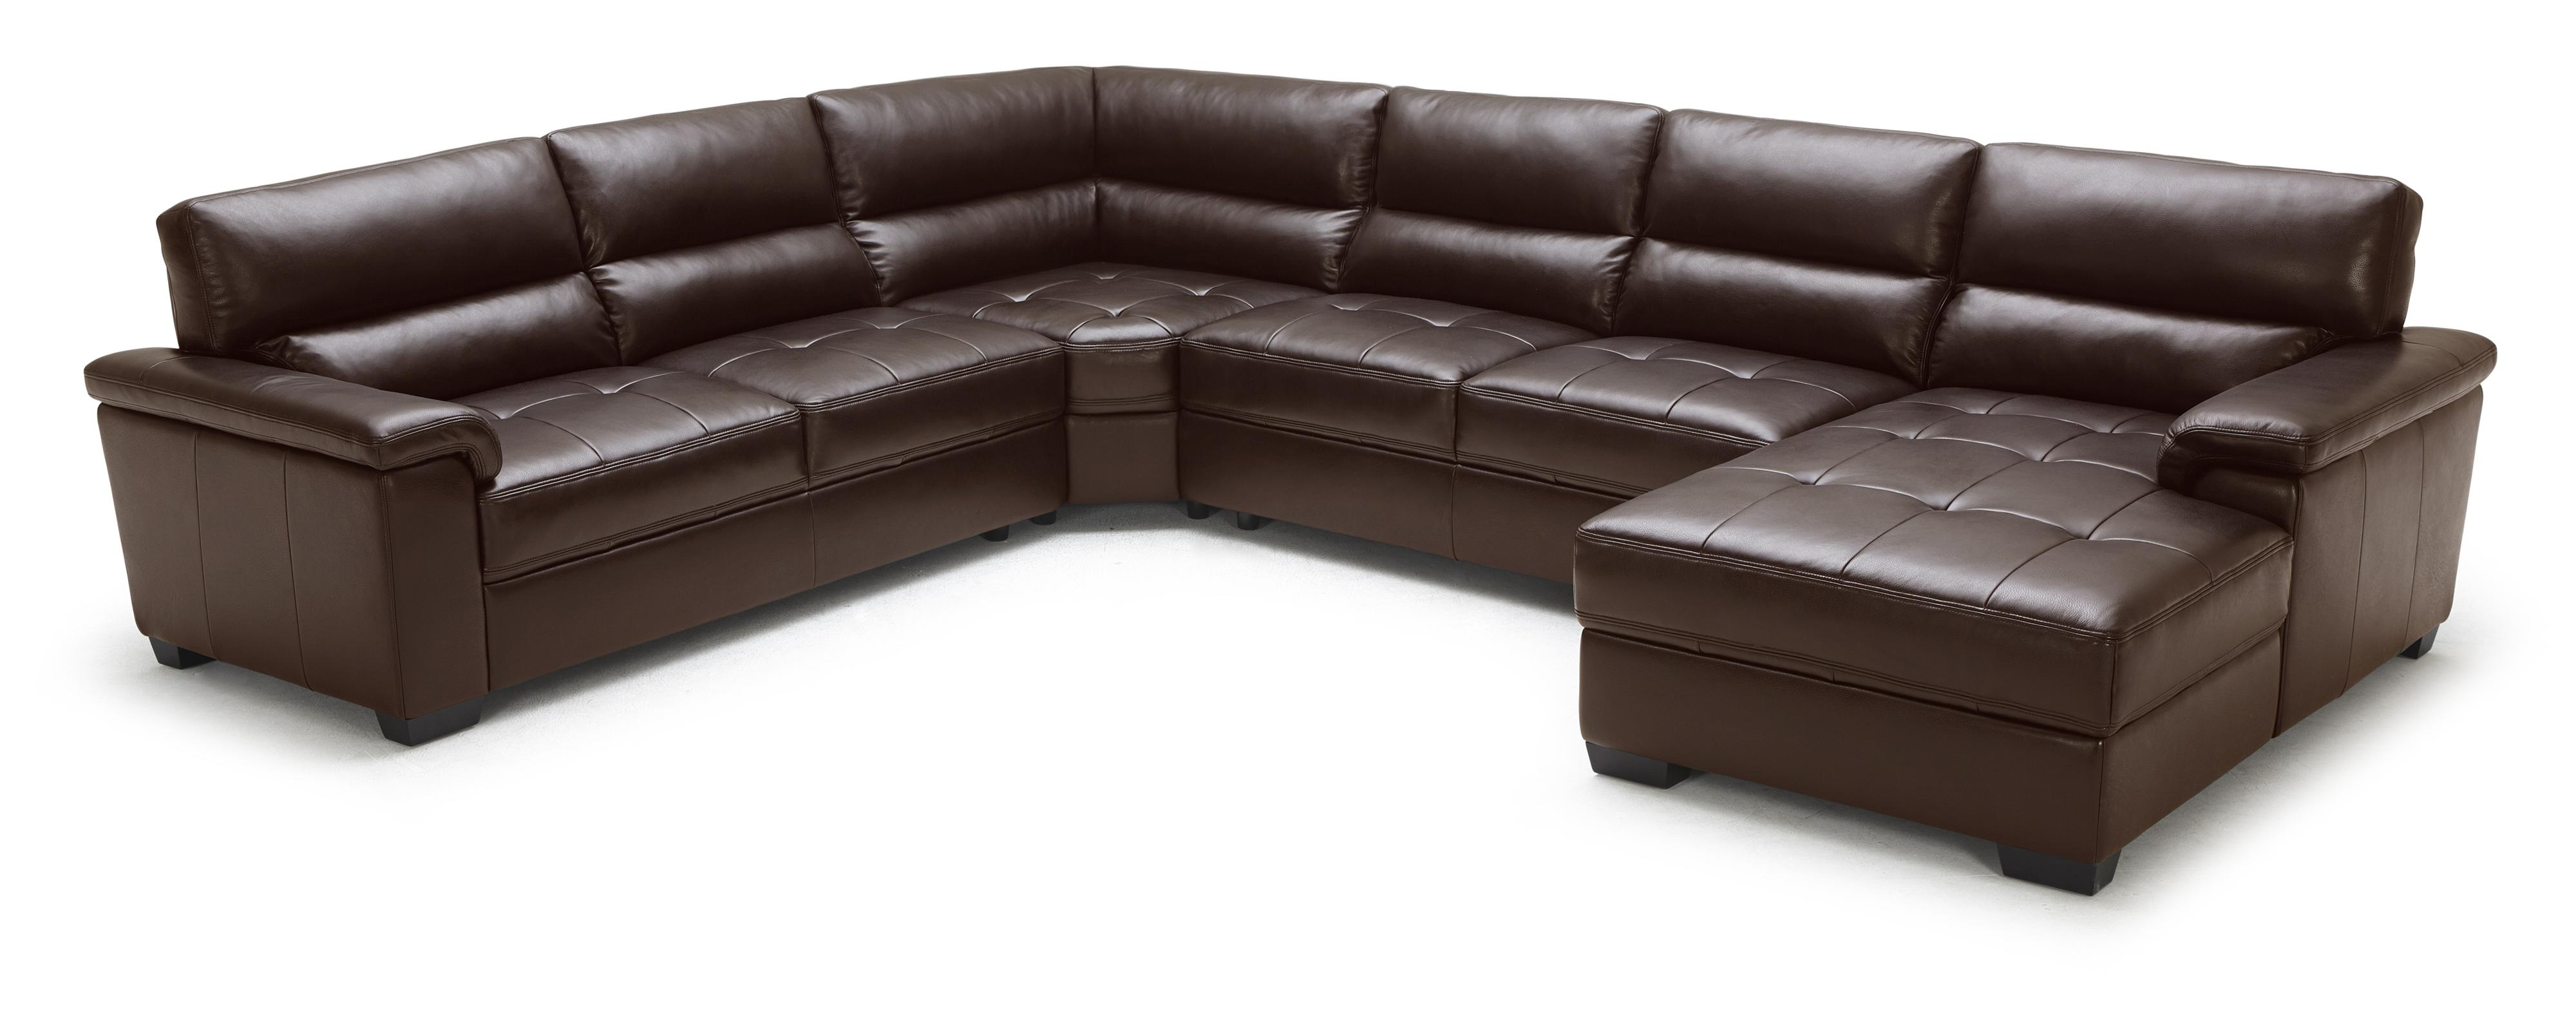 1908 Contemporary Sectional Sofa at Becker Furniture